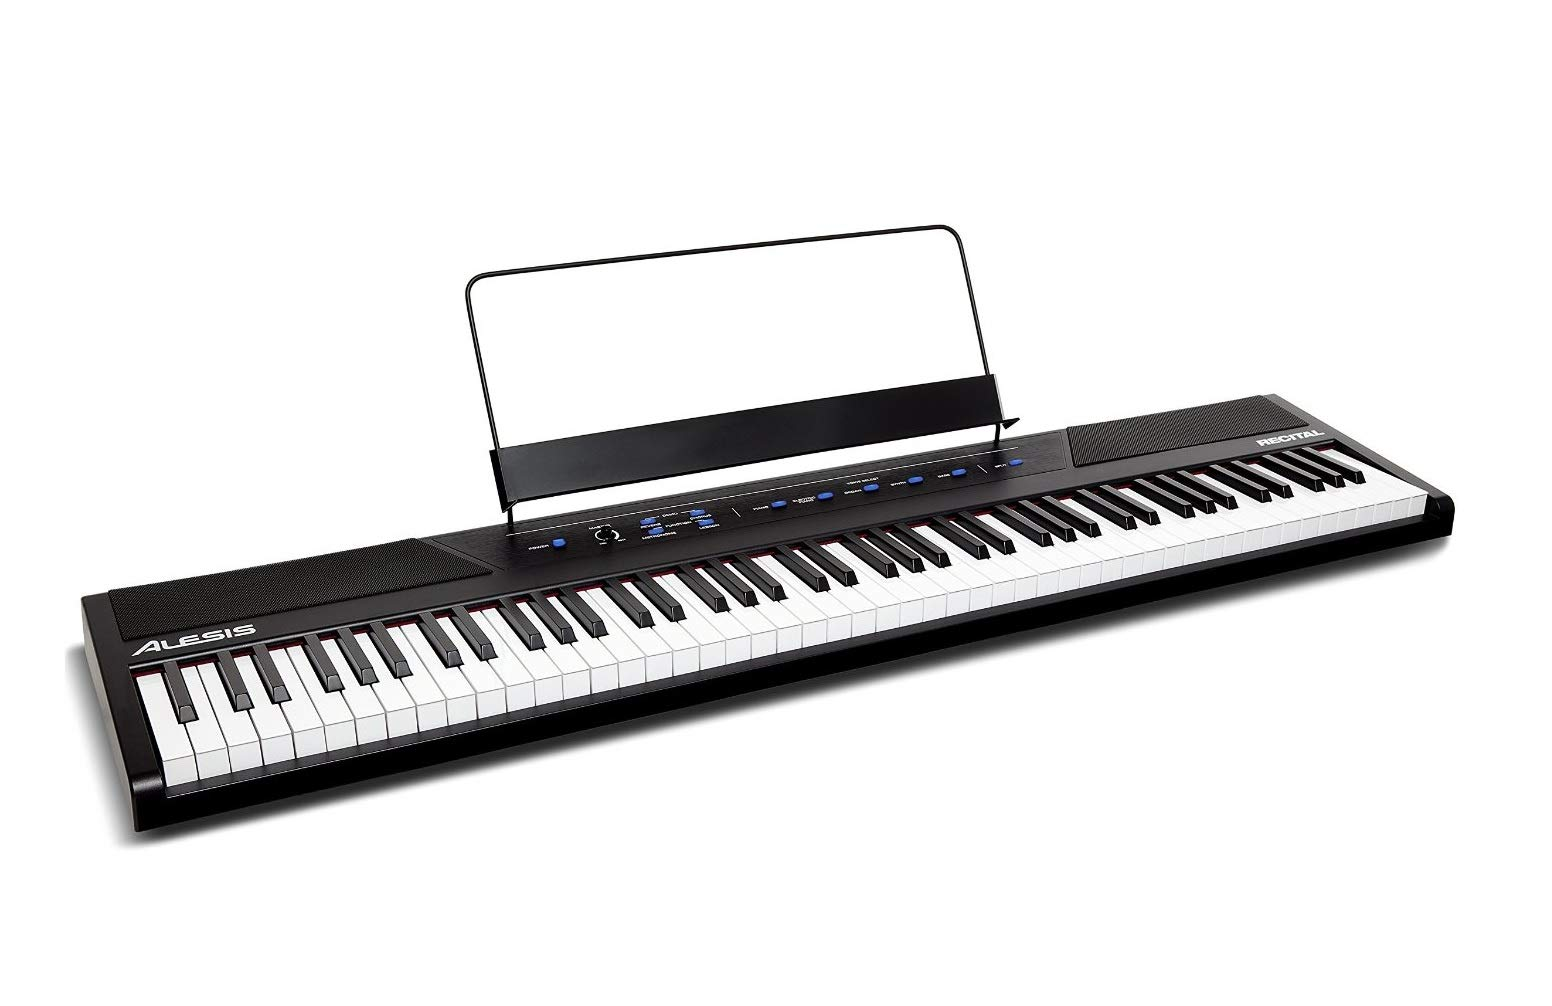 Alesis Recital | 88-Key Beginner Digital Piano / Keyboard with Full-Size Semi-Weighted Keys, Power Supply, Built-In Speakers and 5 Premium Voices (Amazon Exclusive) by Alesis